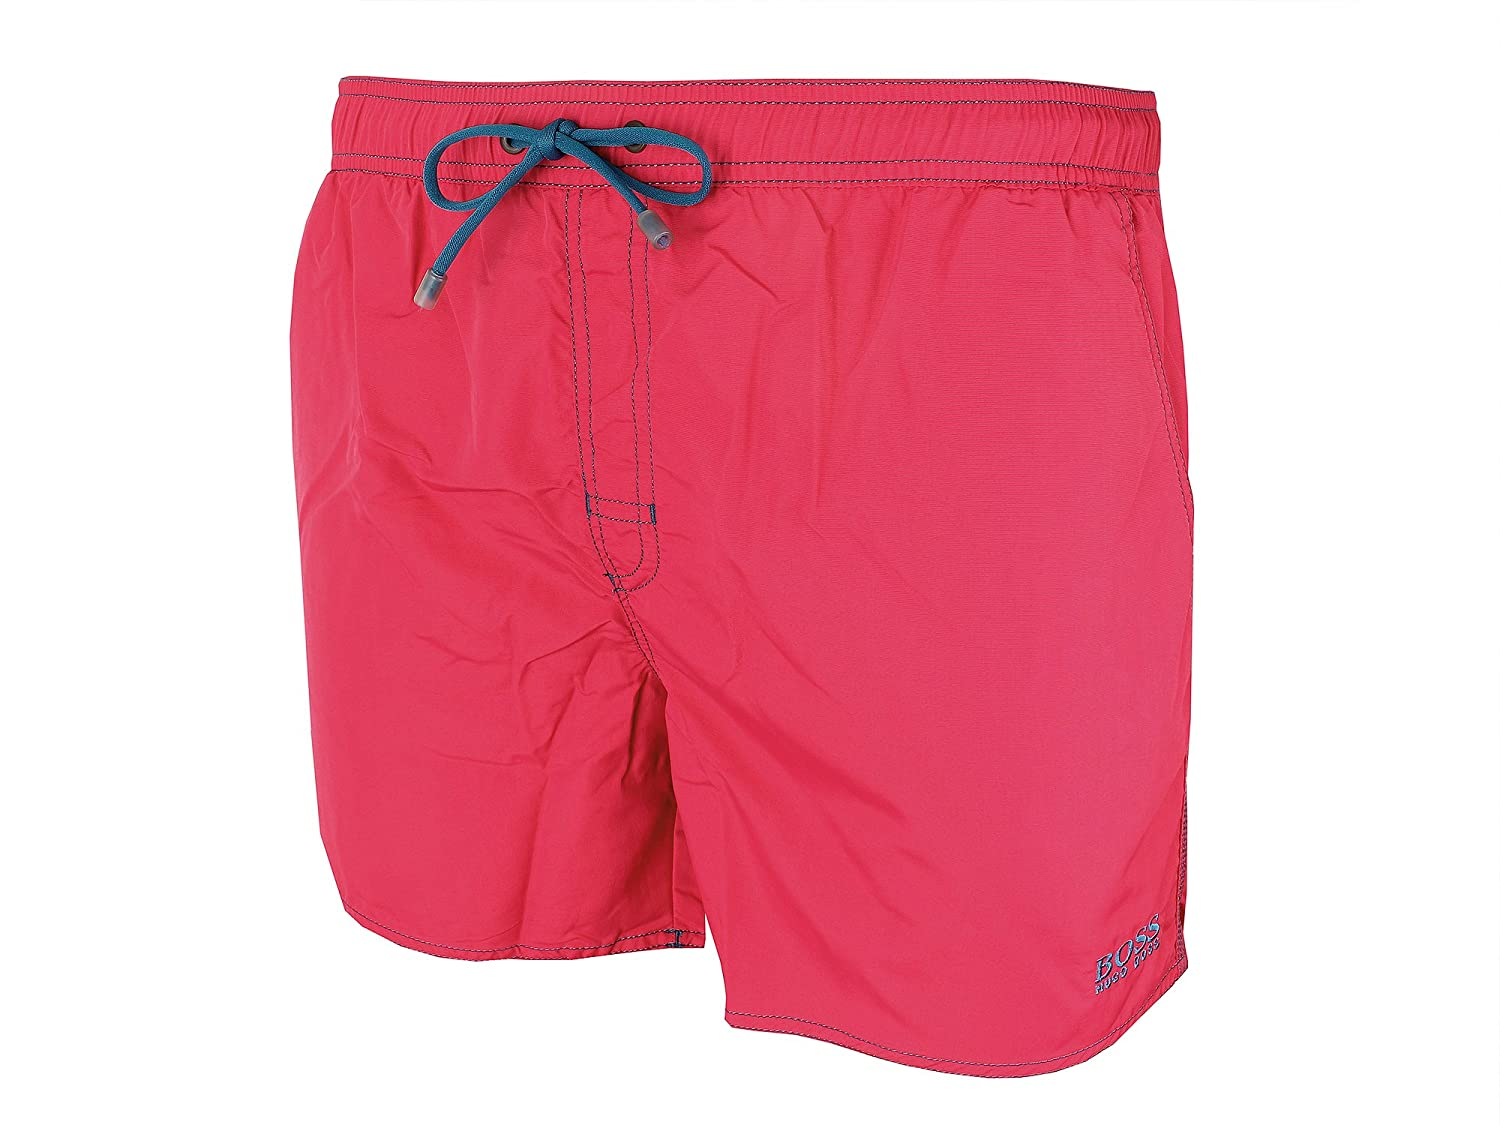 Men's Swim Shorts Lobster by Boss, pink